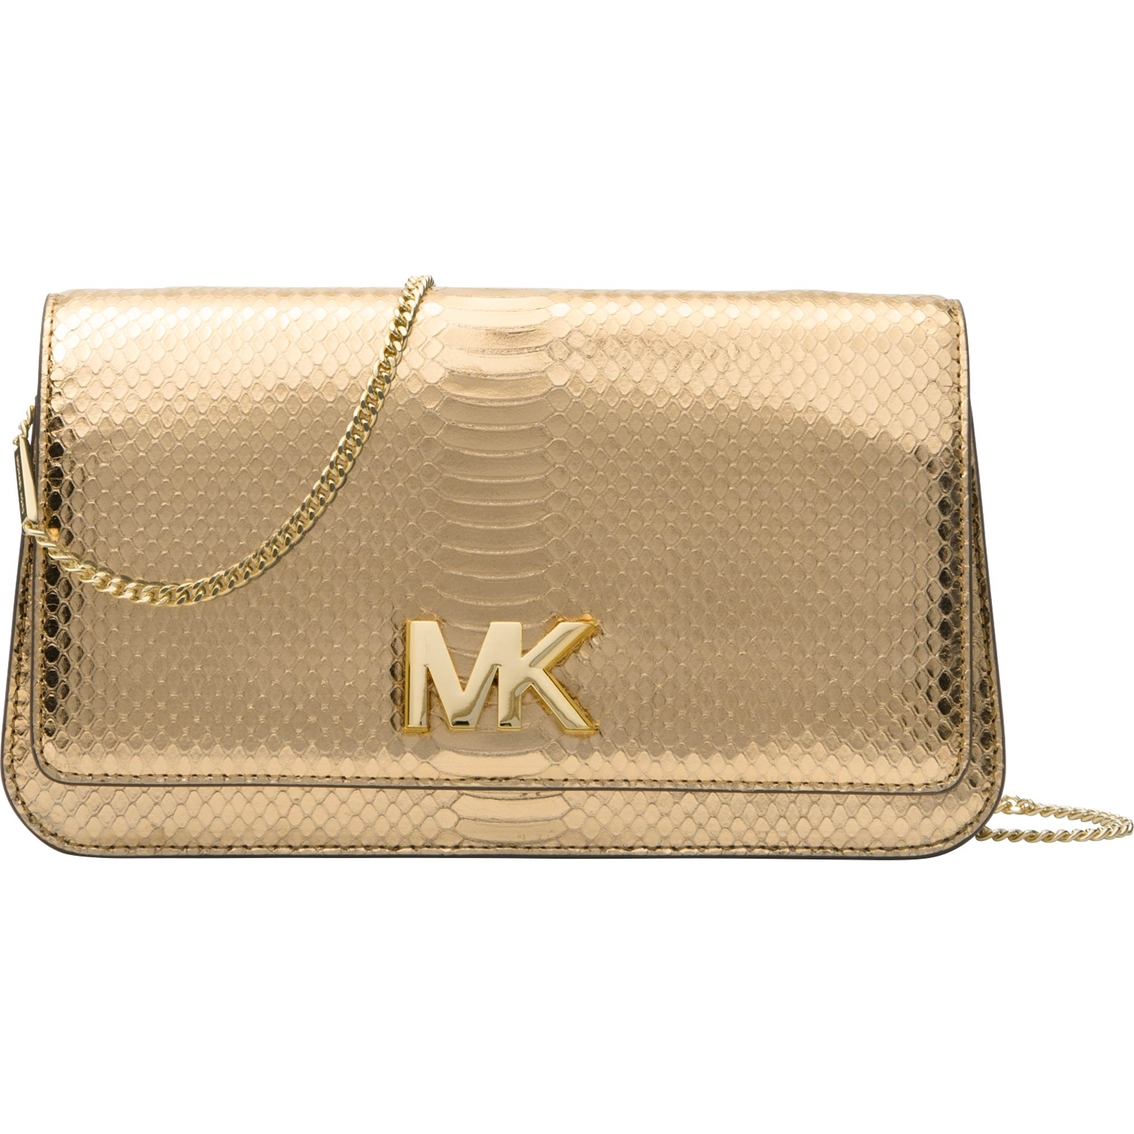 9db307580560 Michael Kors Mott Large Clutch